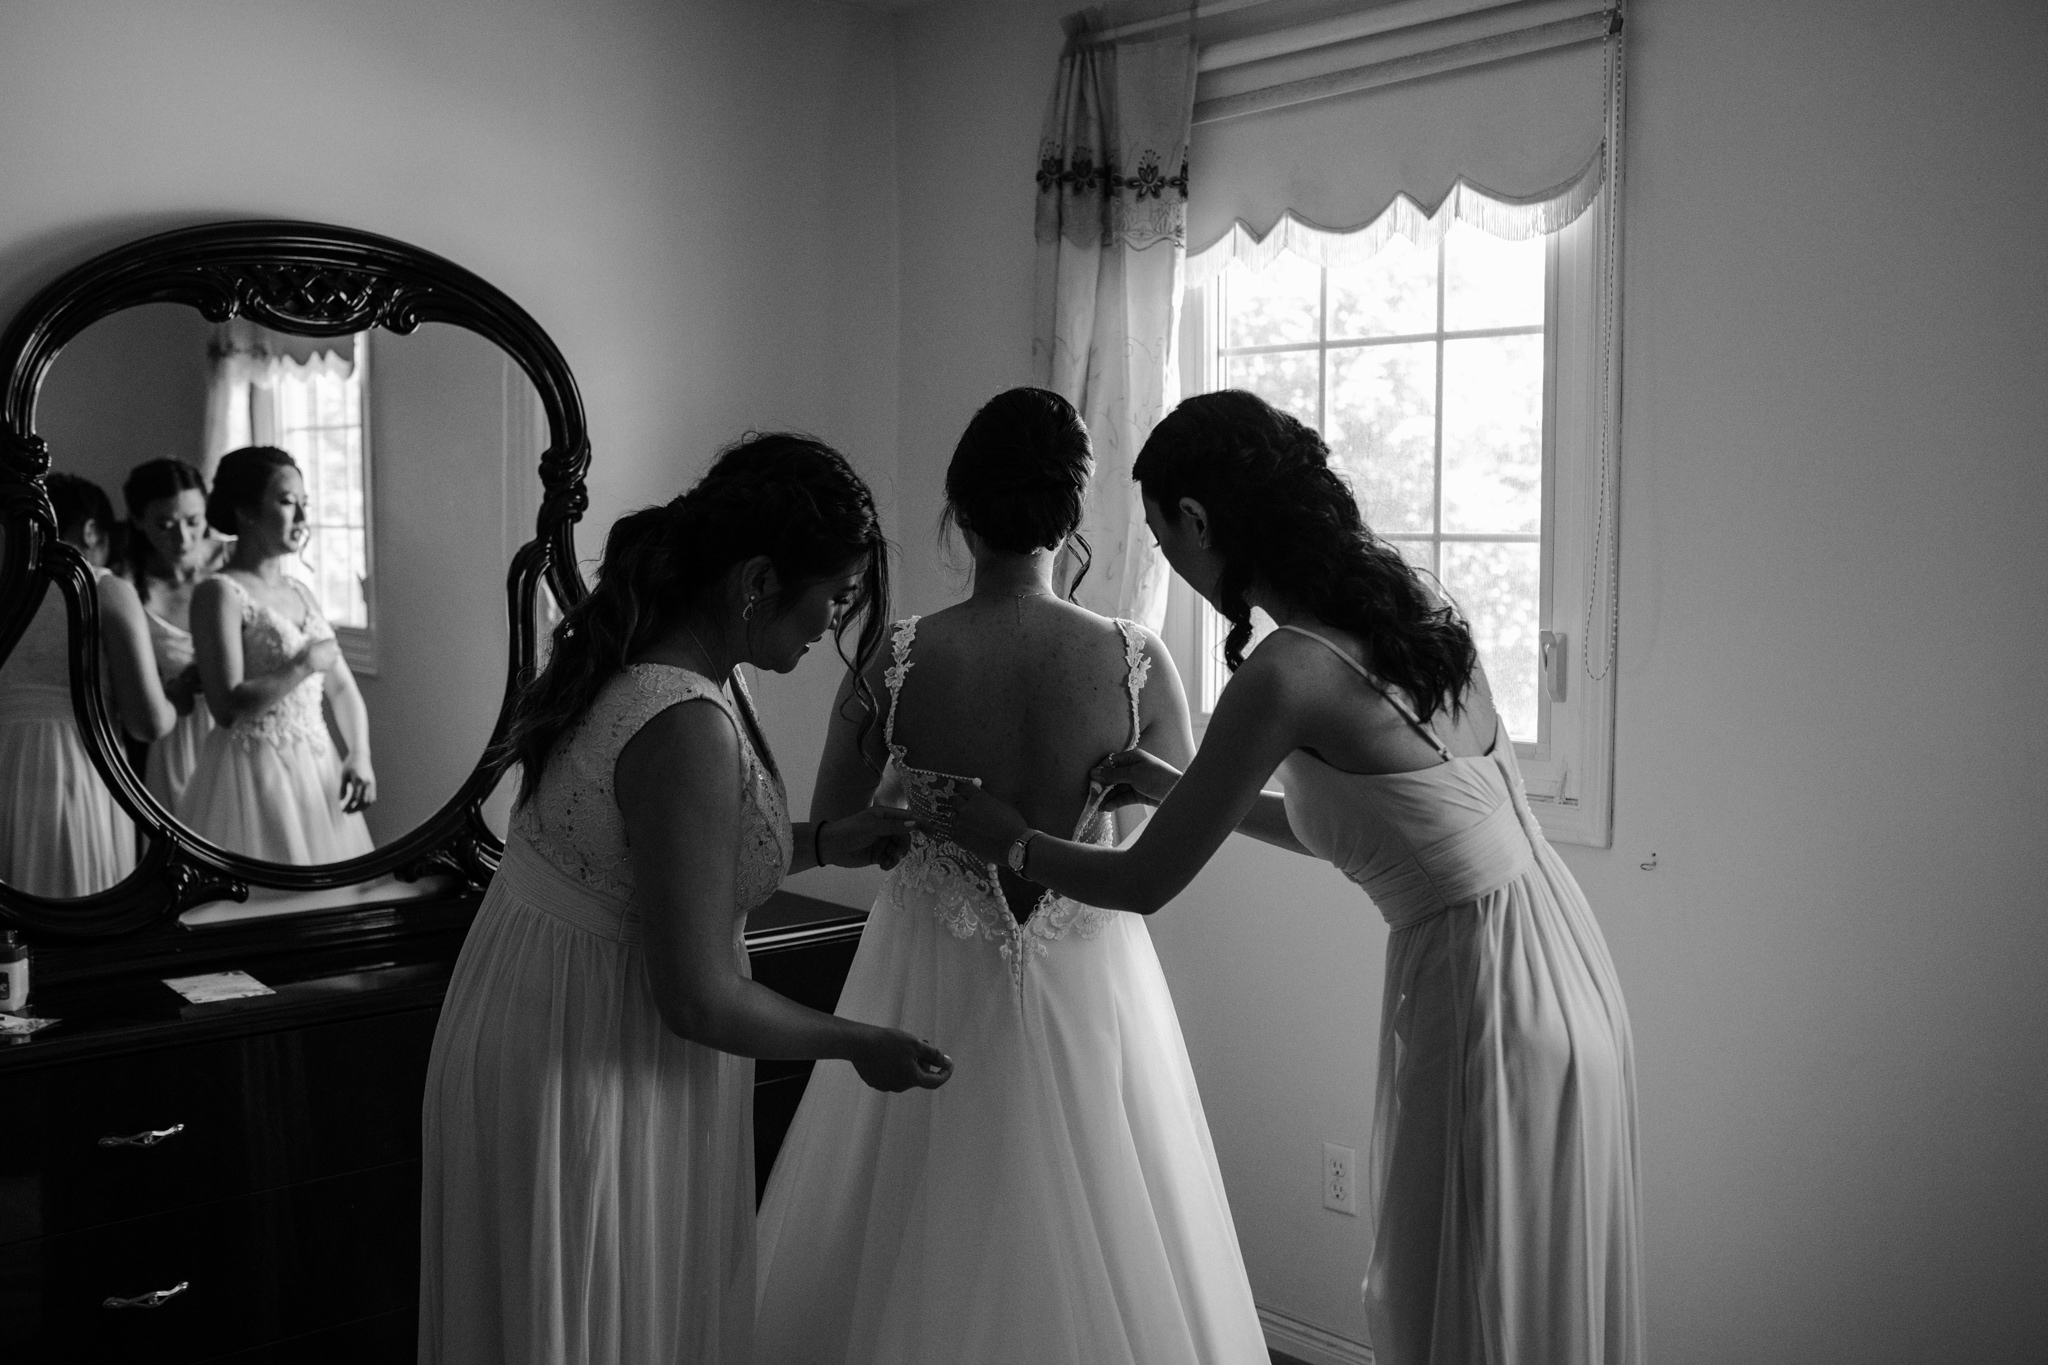 bridesmaids helping bride zip into dress